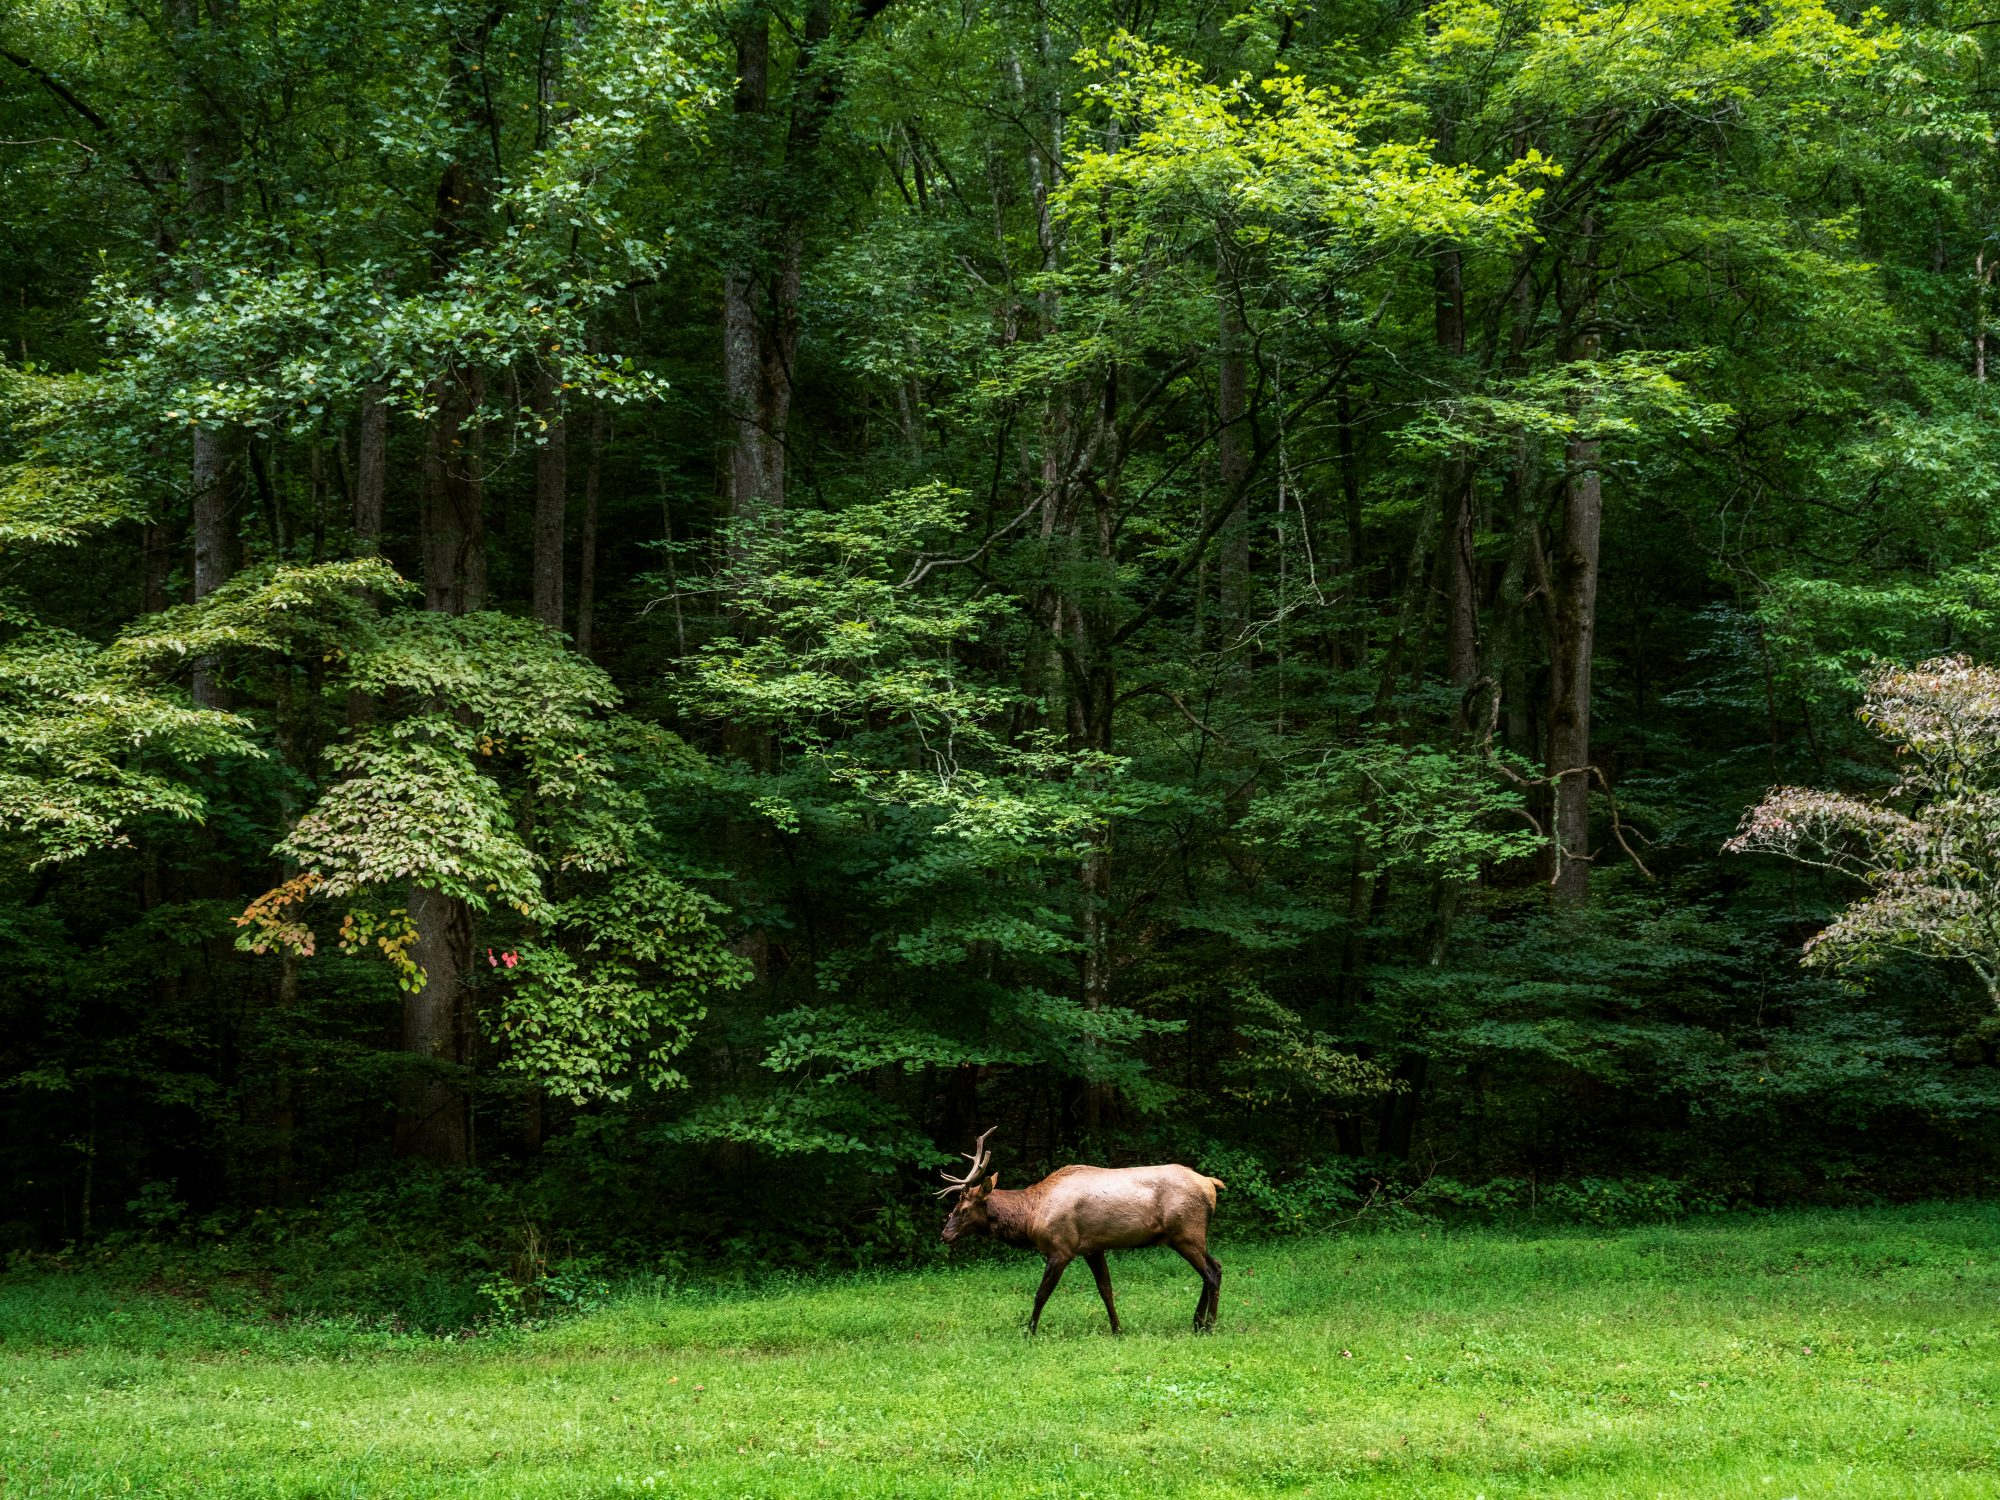 Elk grazing in field in Great Smoky Mountains National Park